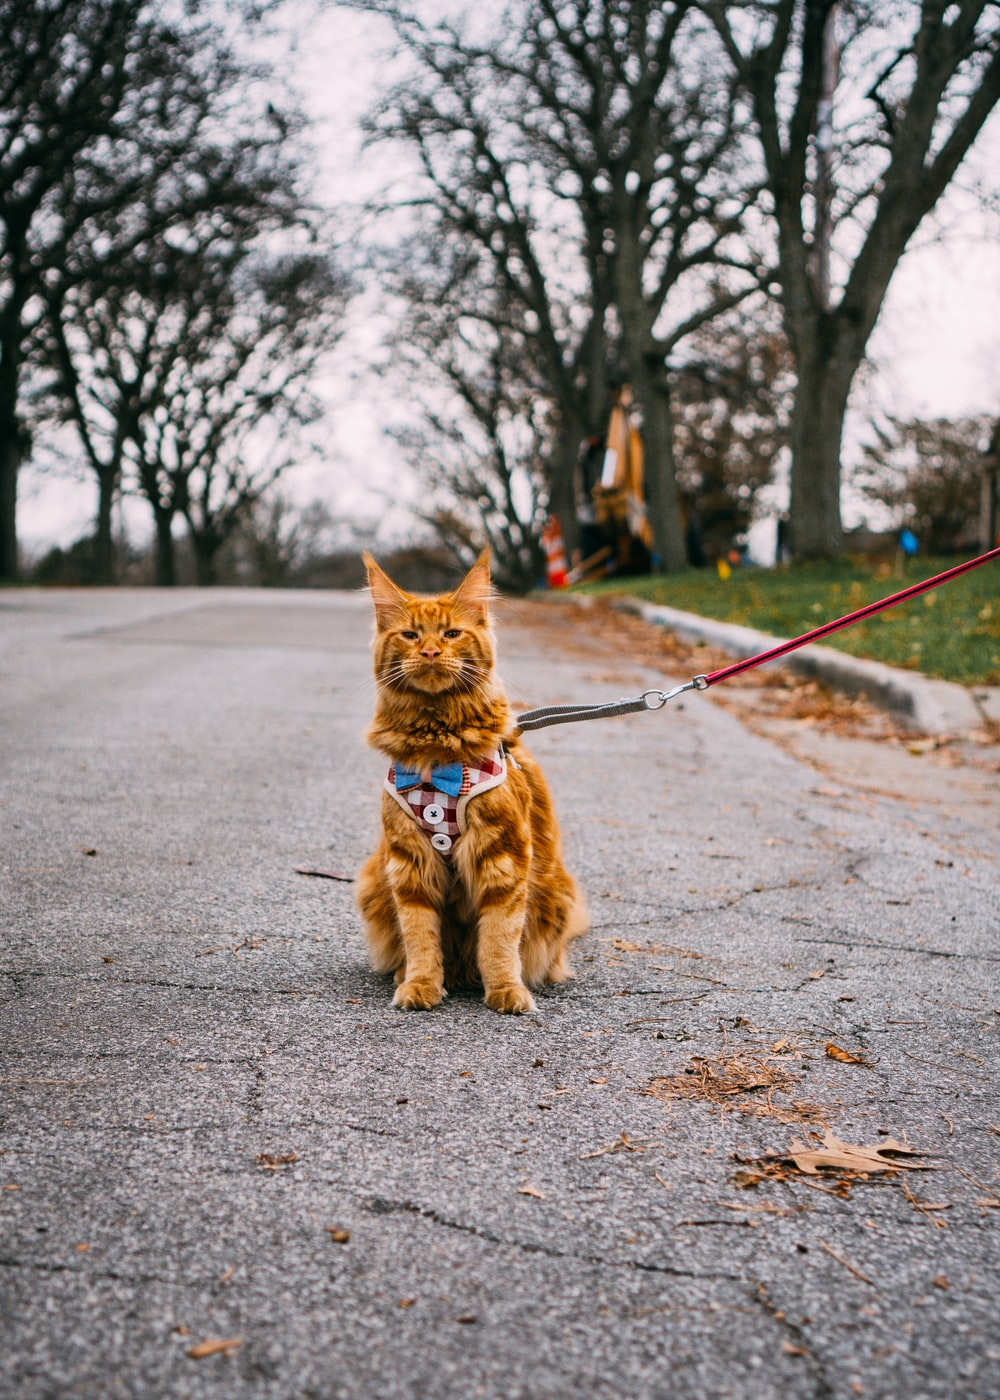 leashed cat sitting on road